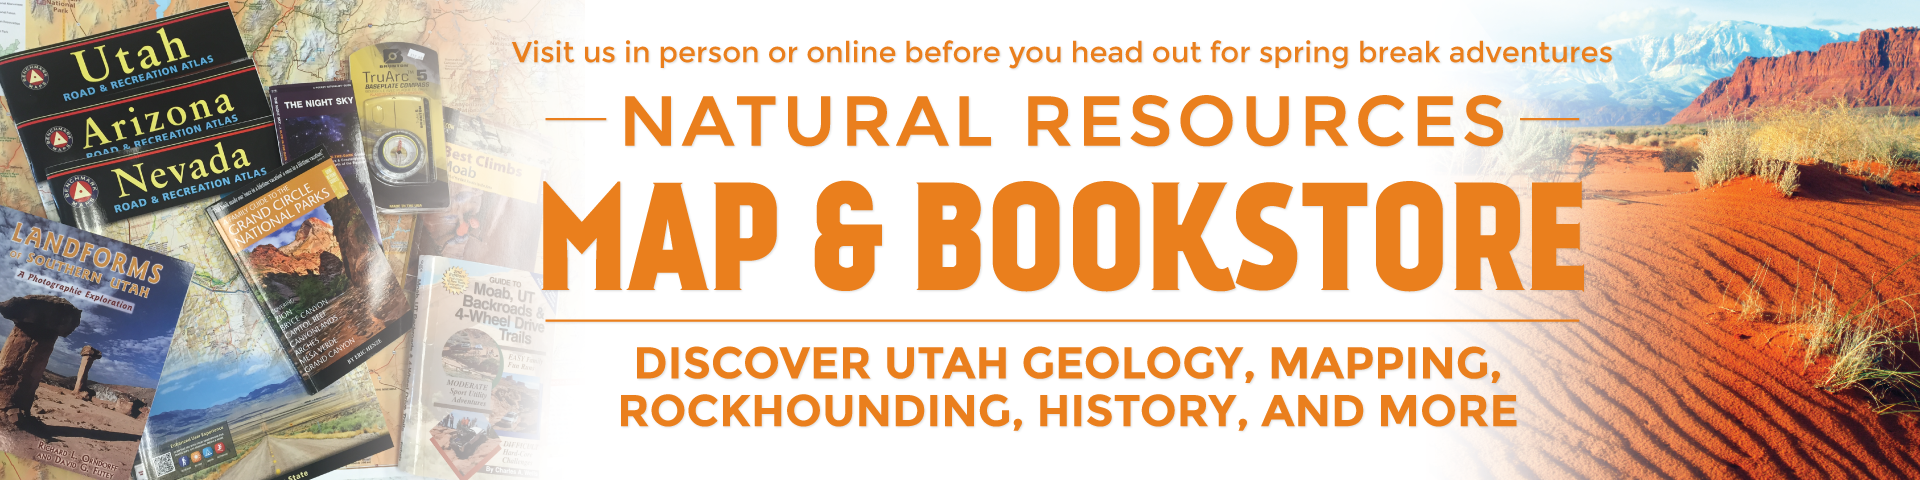 Natural Resources Map & Bookstore